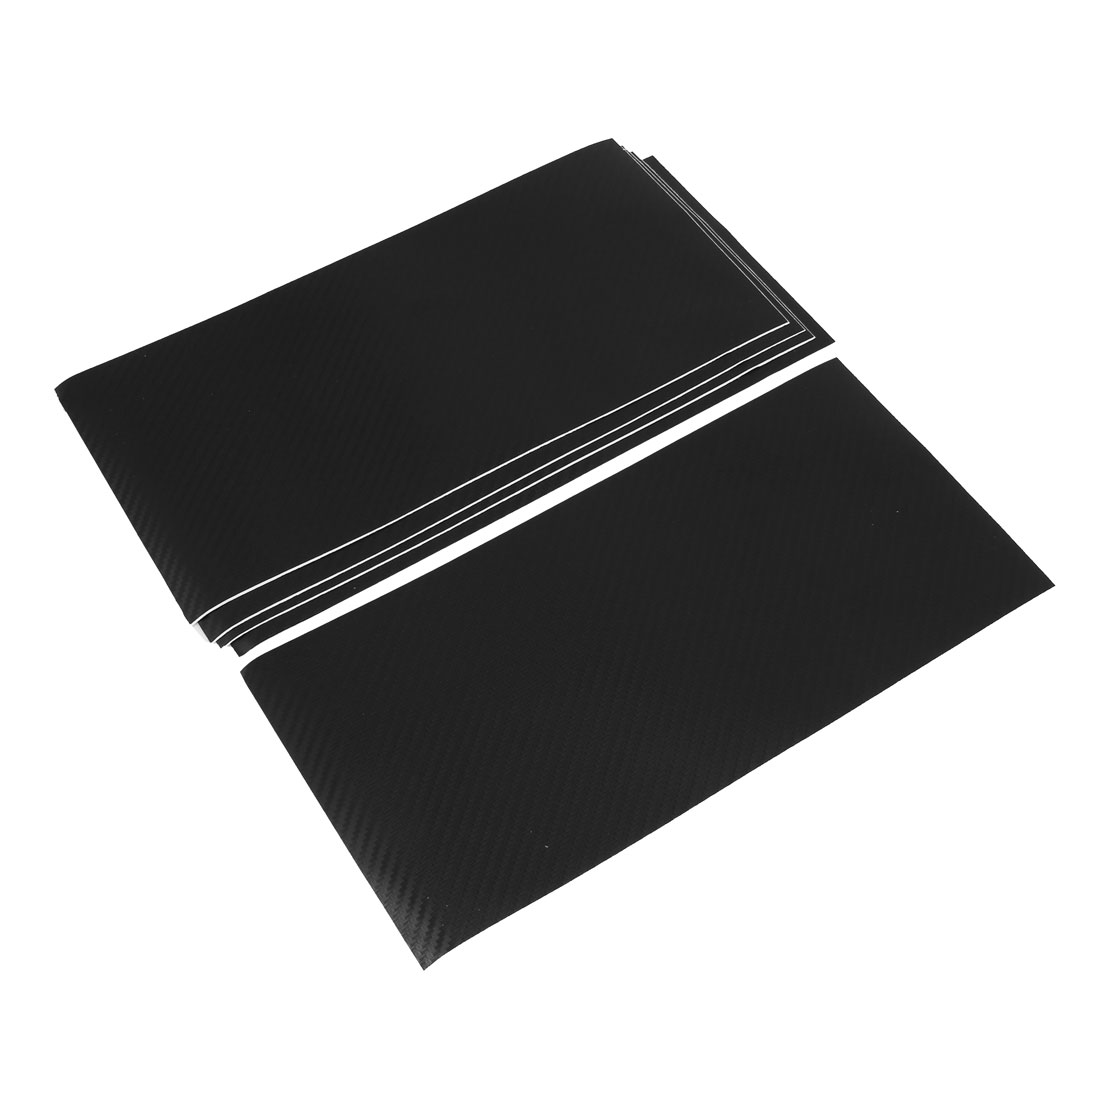 "5PCS 12"" x 5.6"" DIY Adhesive Texture Carbon Fiber Film Sticker Black for Auto"